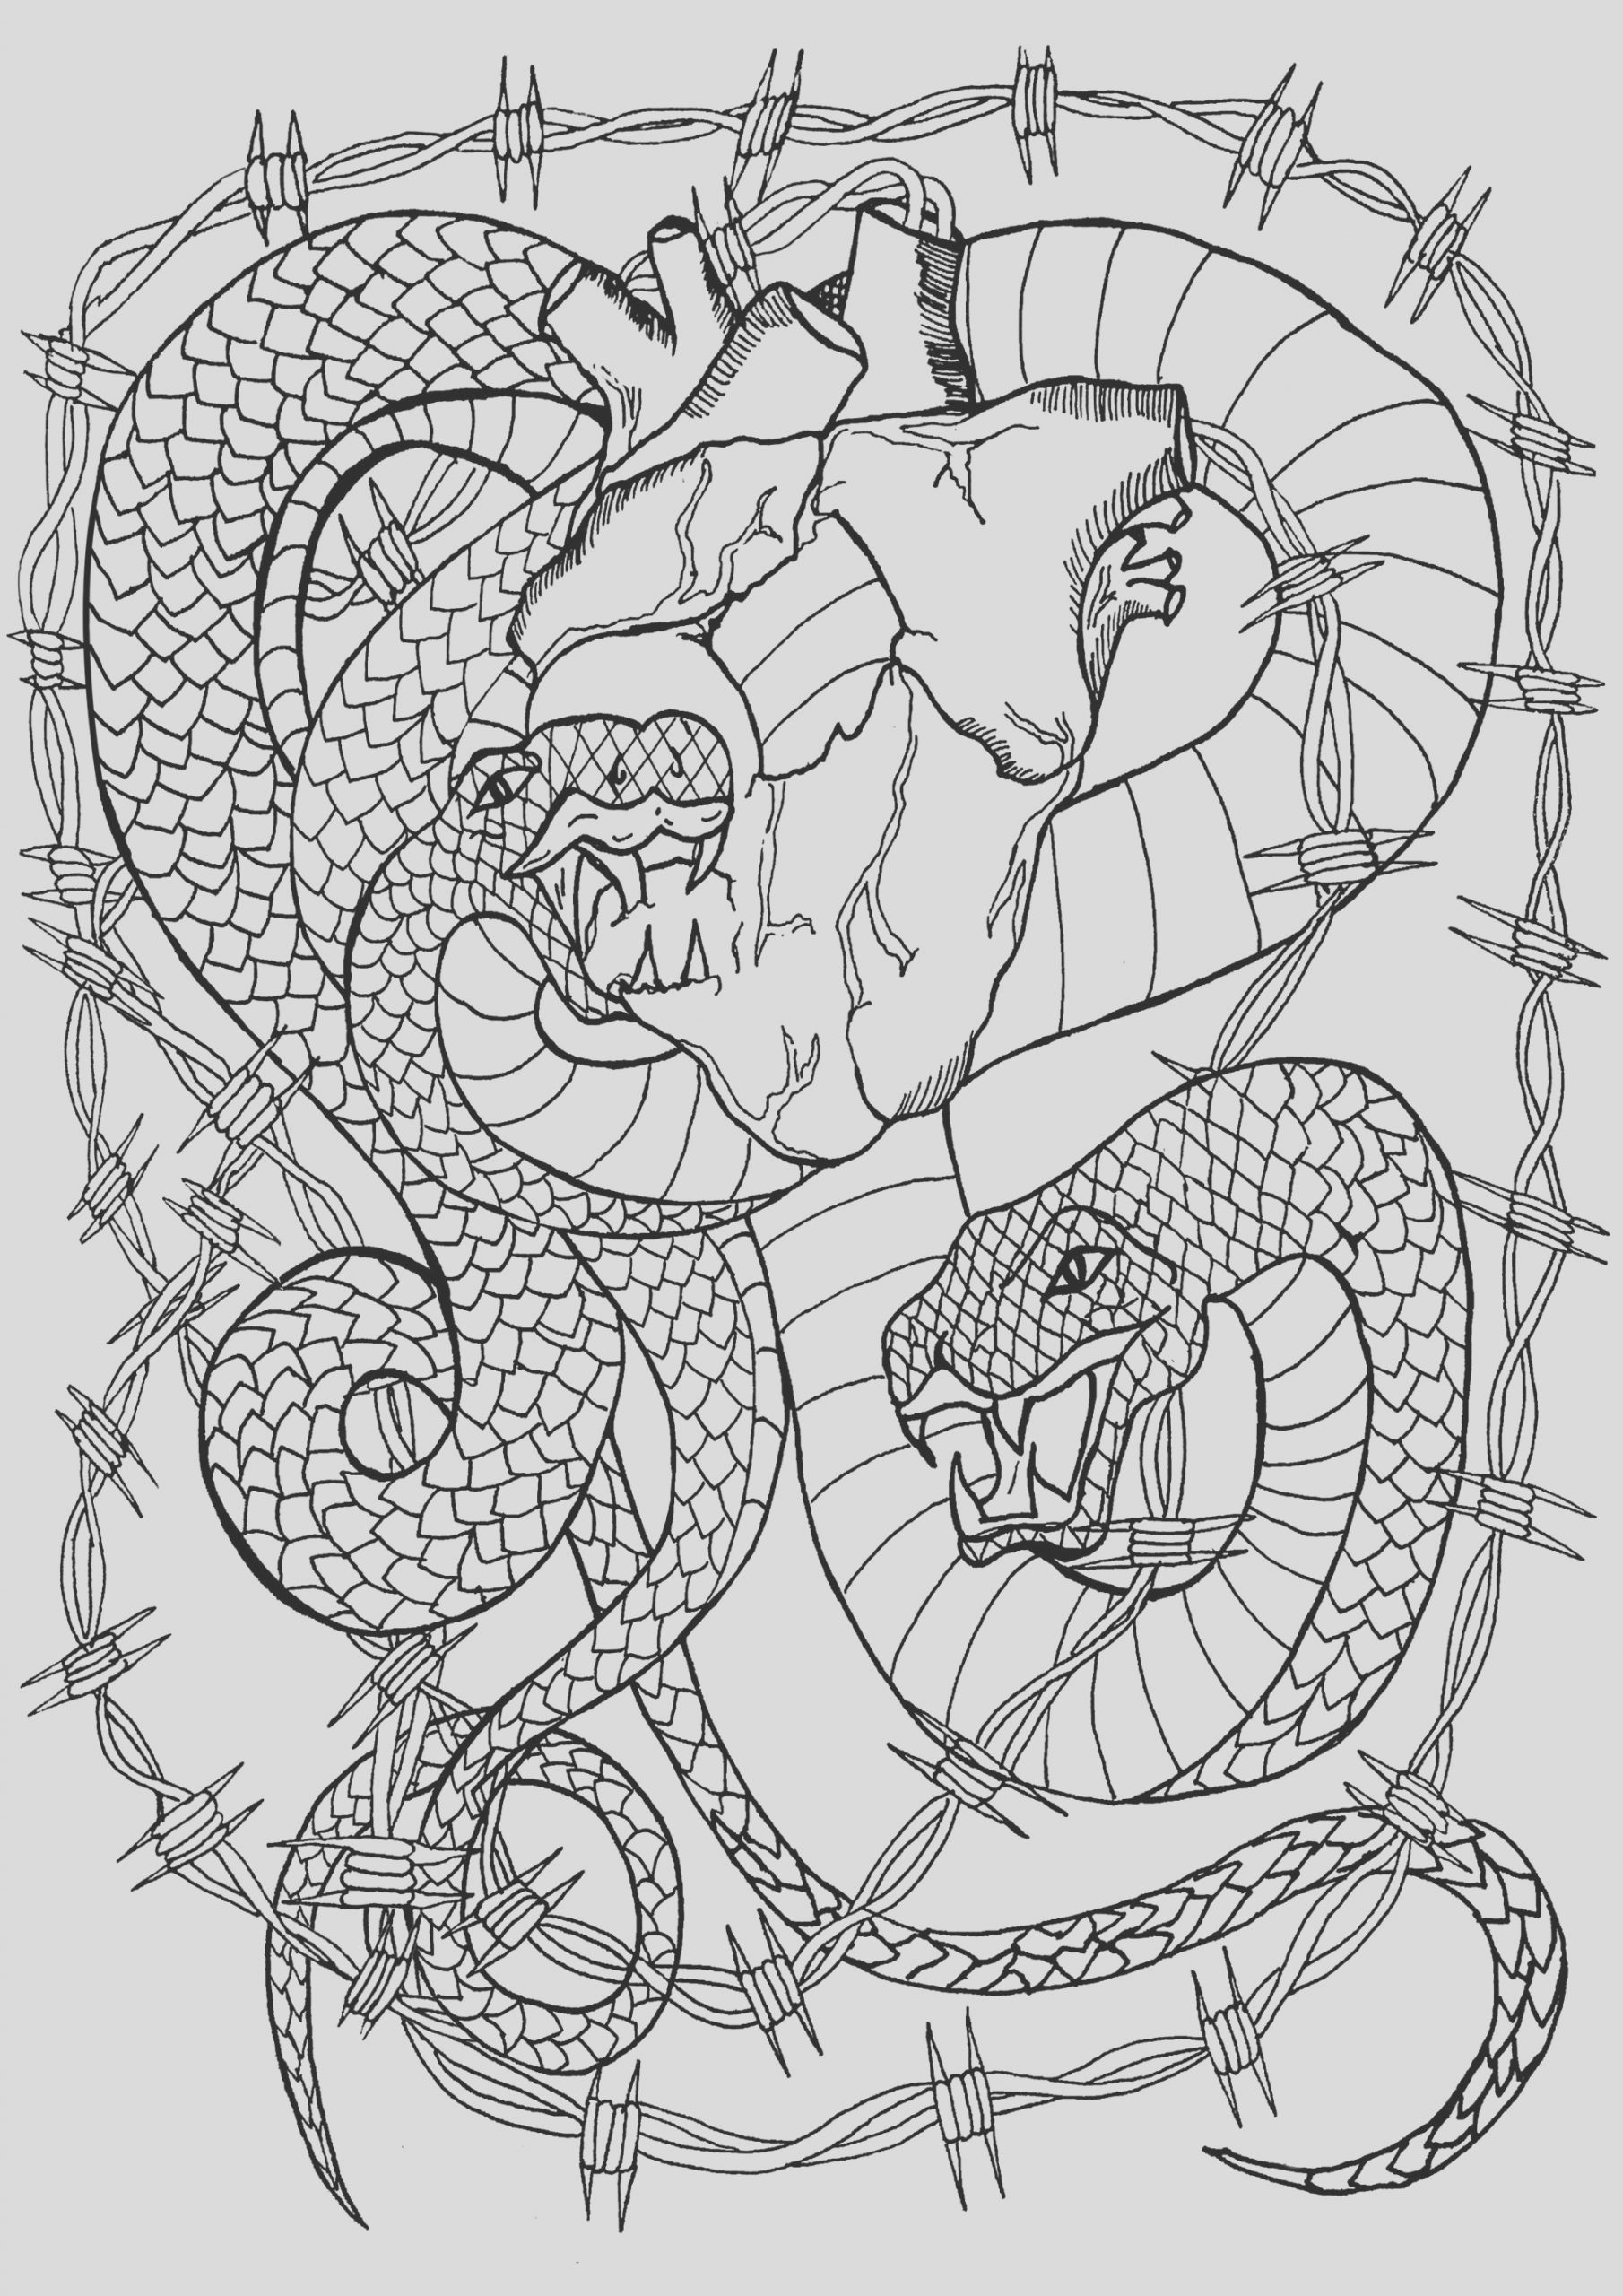 image=tatoo coloring snake heart 1